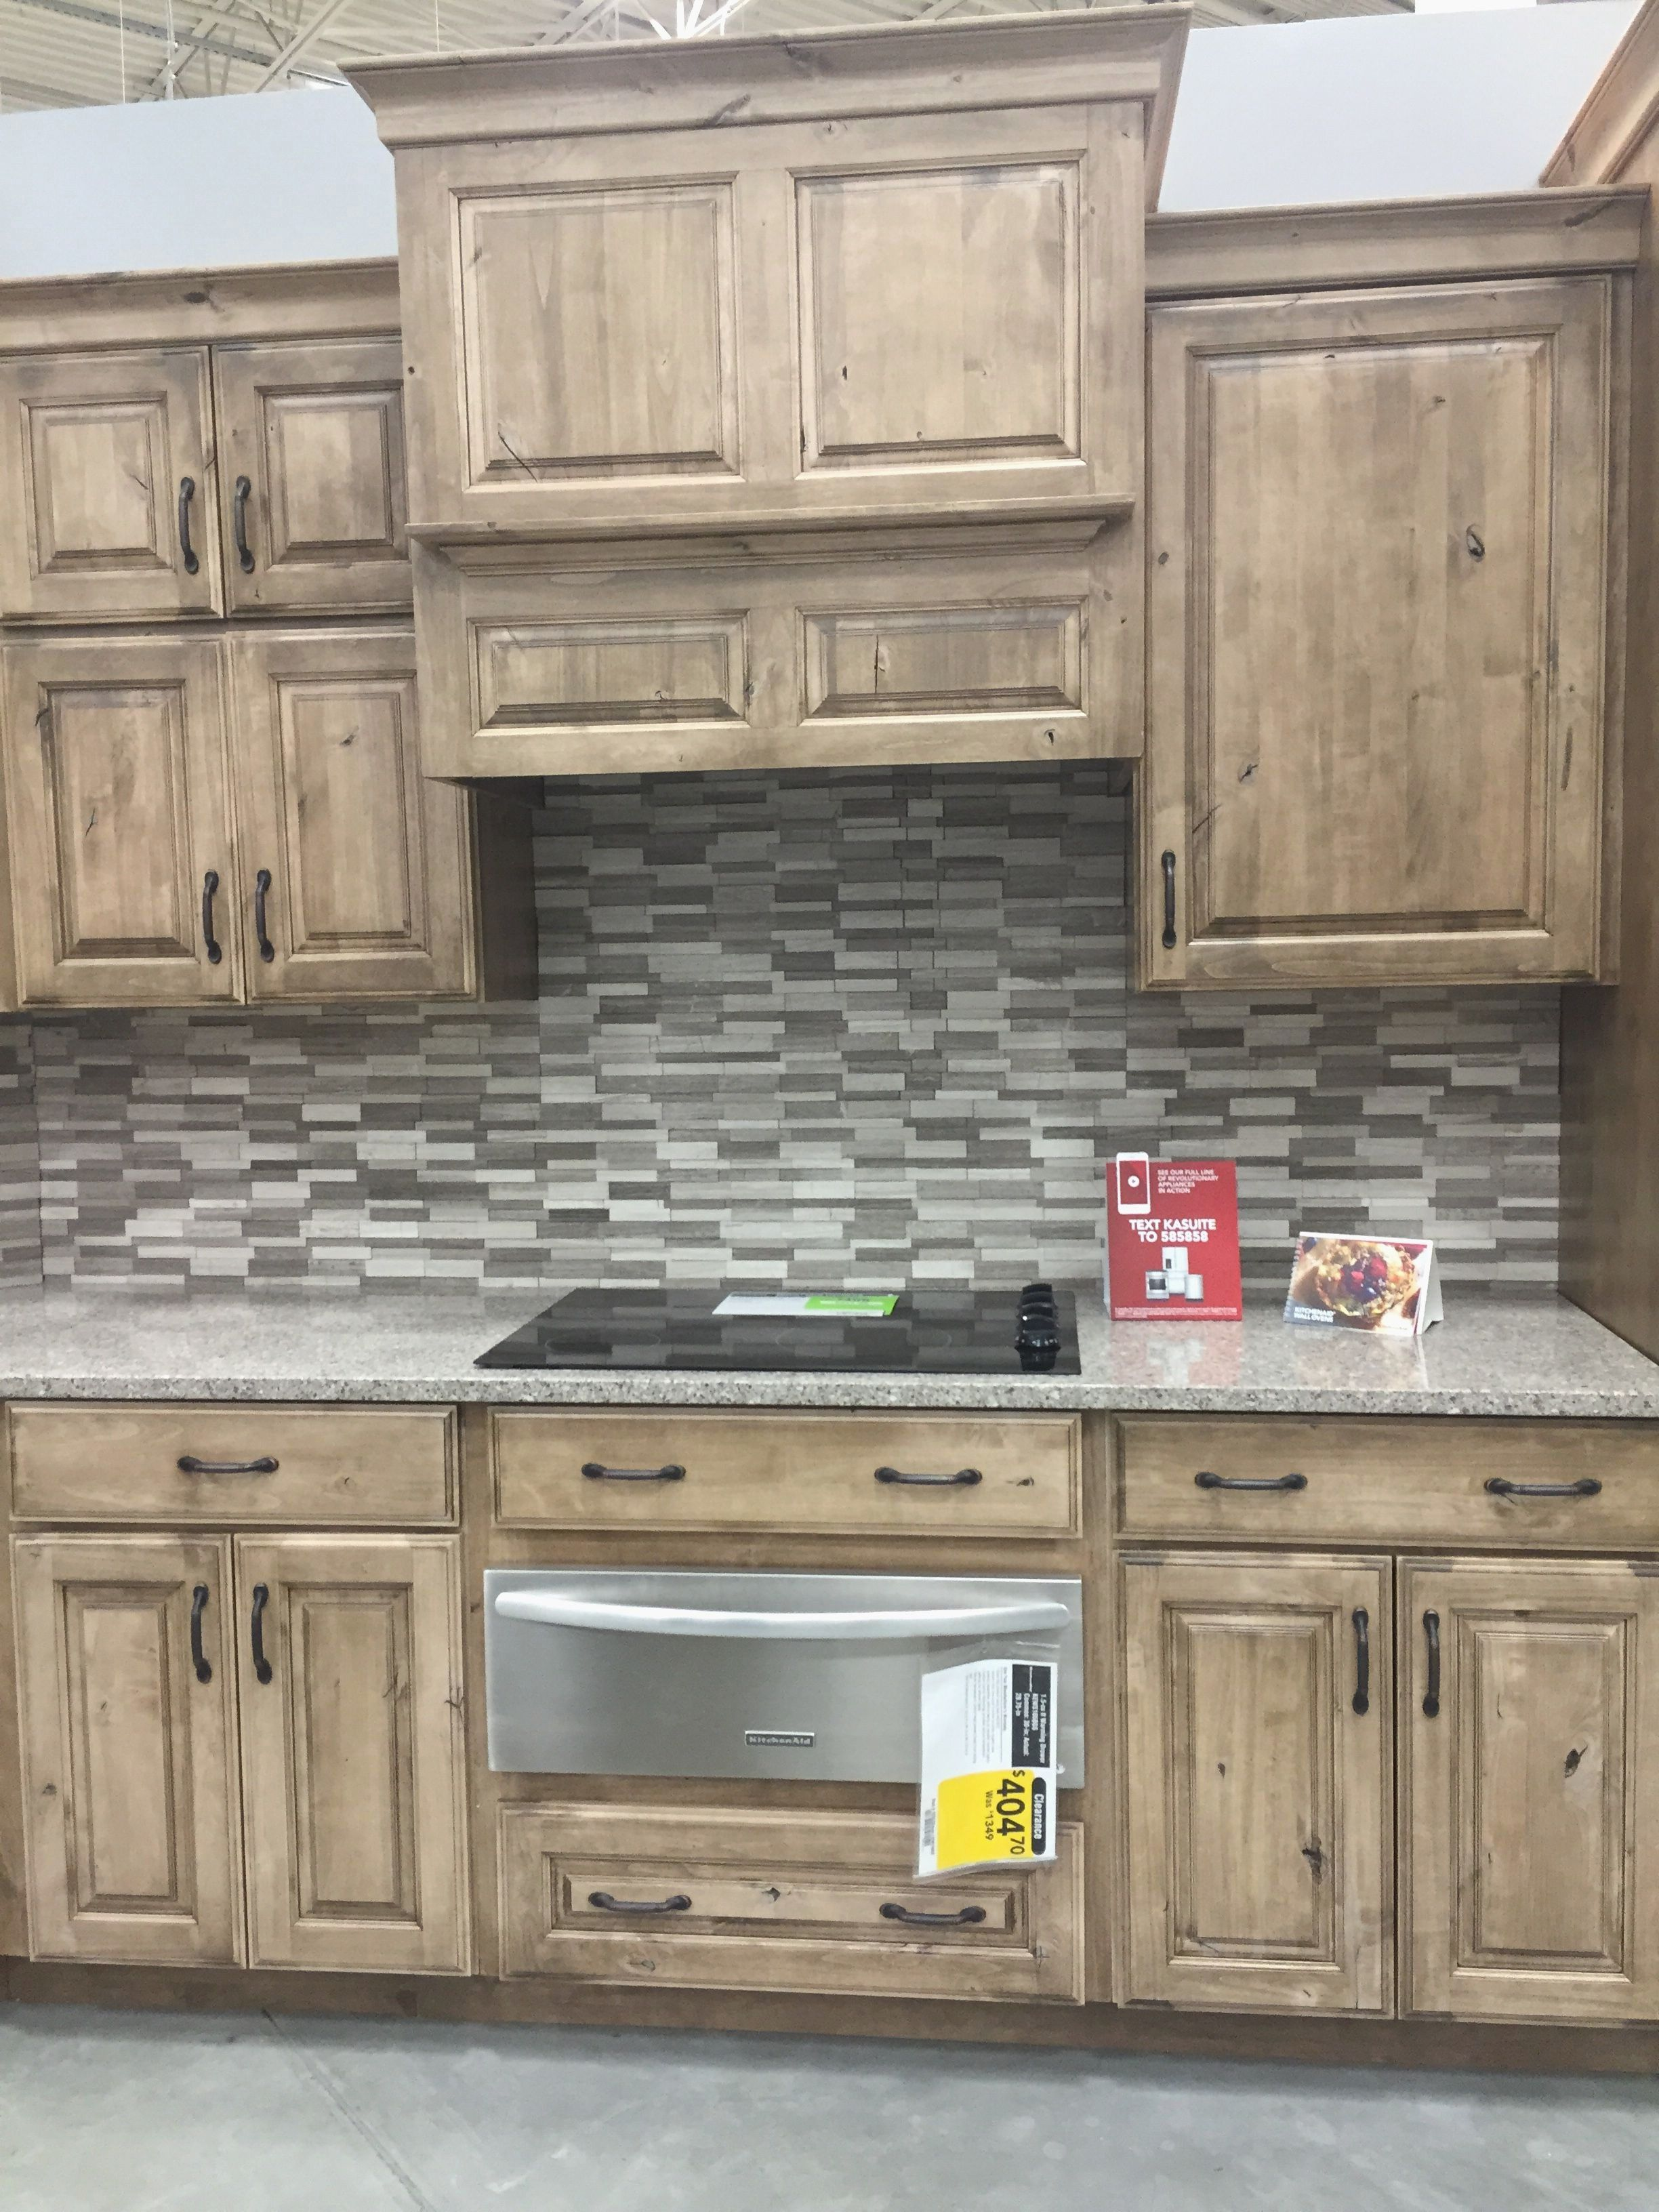 Knotty Pine Kitchen Cabinets Lowes Inspirational Lowes Schuler Cabinetry Knotty Alder Capp Rustic Kitchen Cabinets Custom Kitchen Cabinets New Kitchen Cabinets